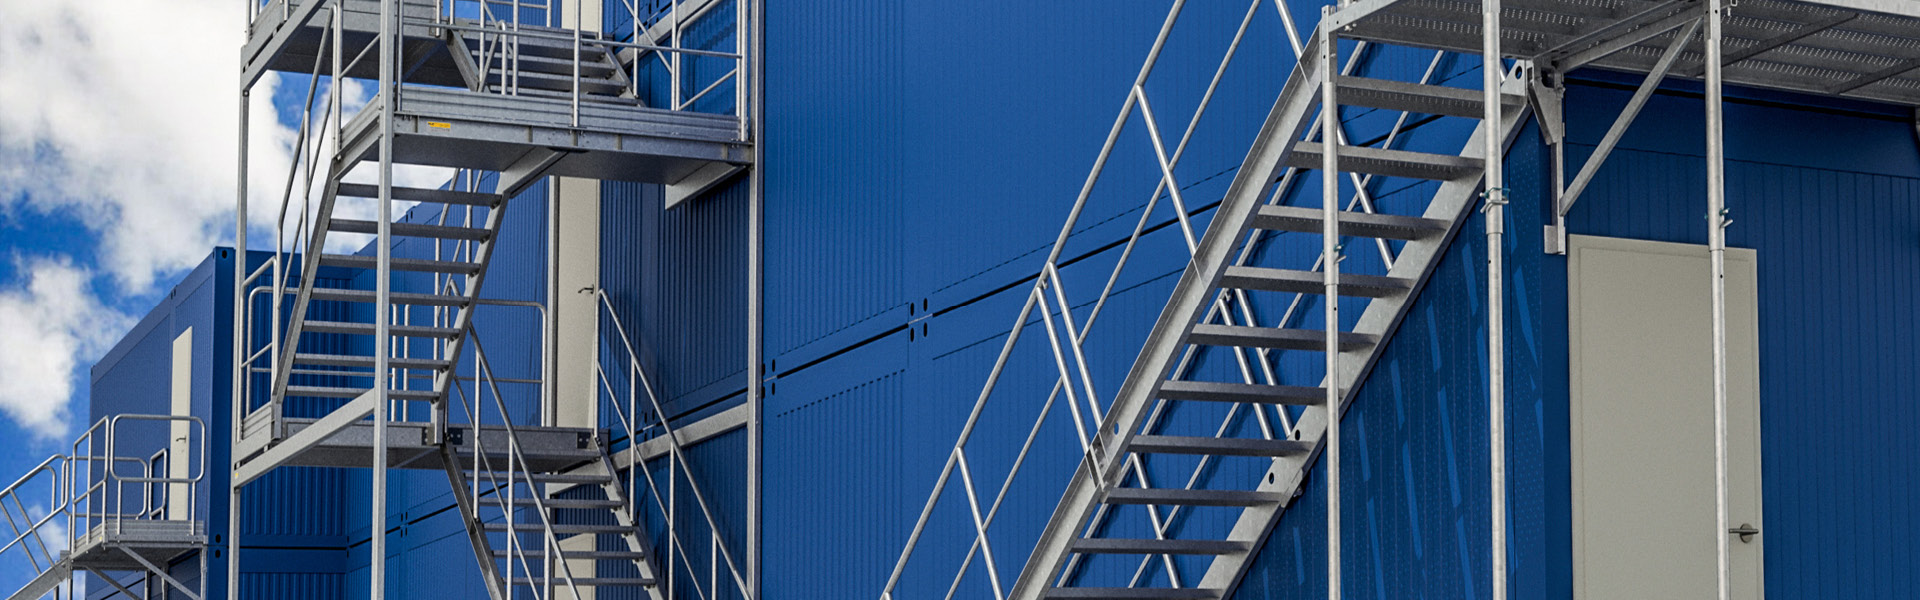 Containertreppe